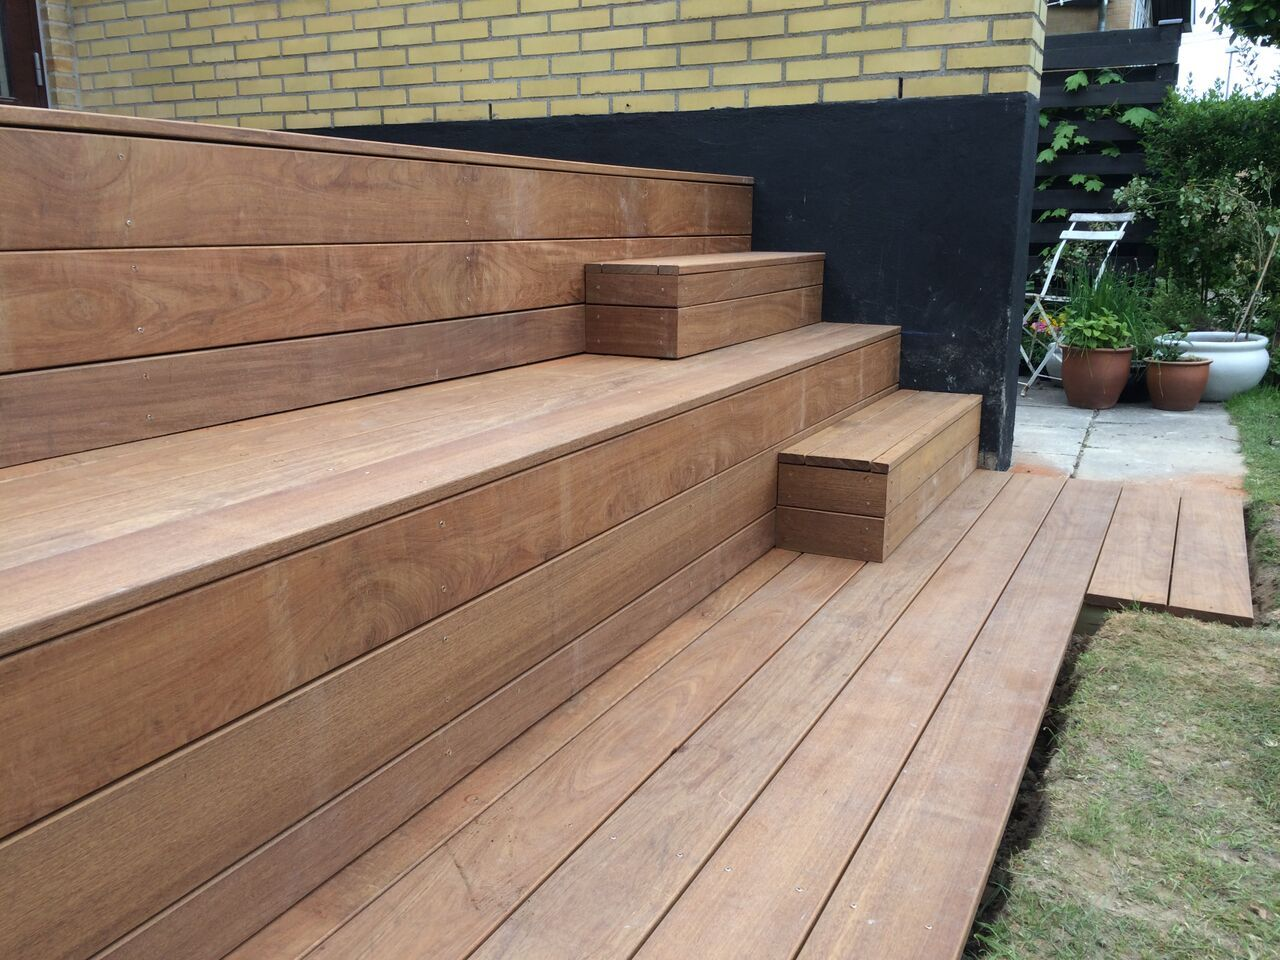 matt large and small steps coming off lowest garden. Black Bedroom Furniture Sets. Home Design Ideas